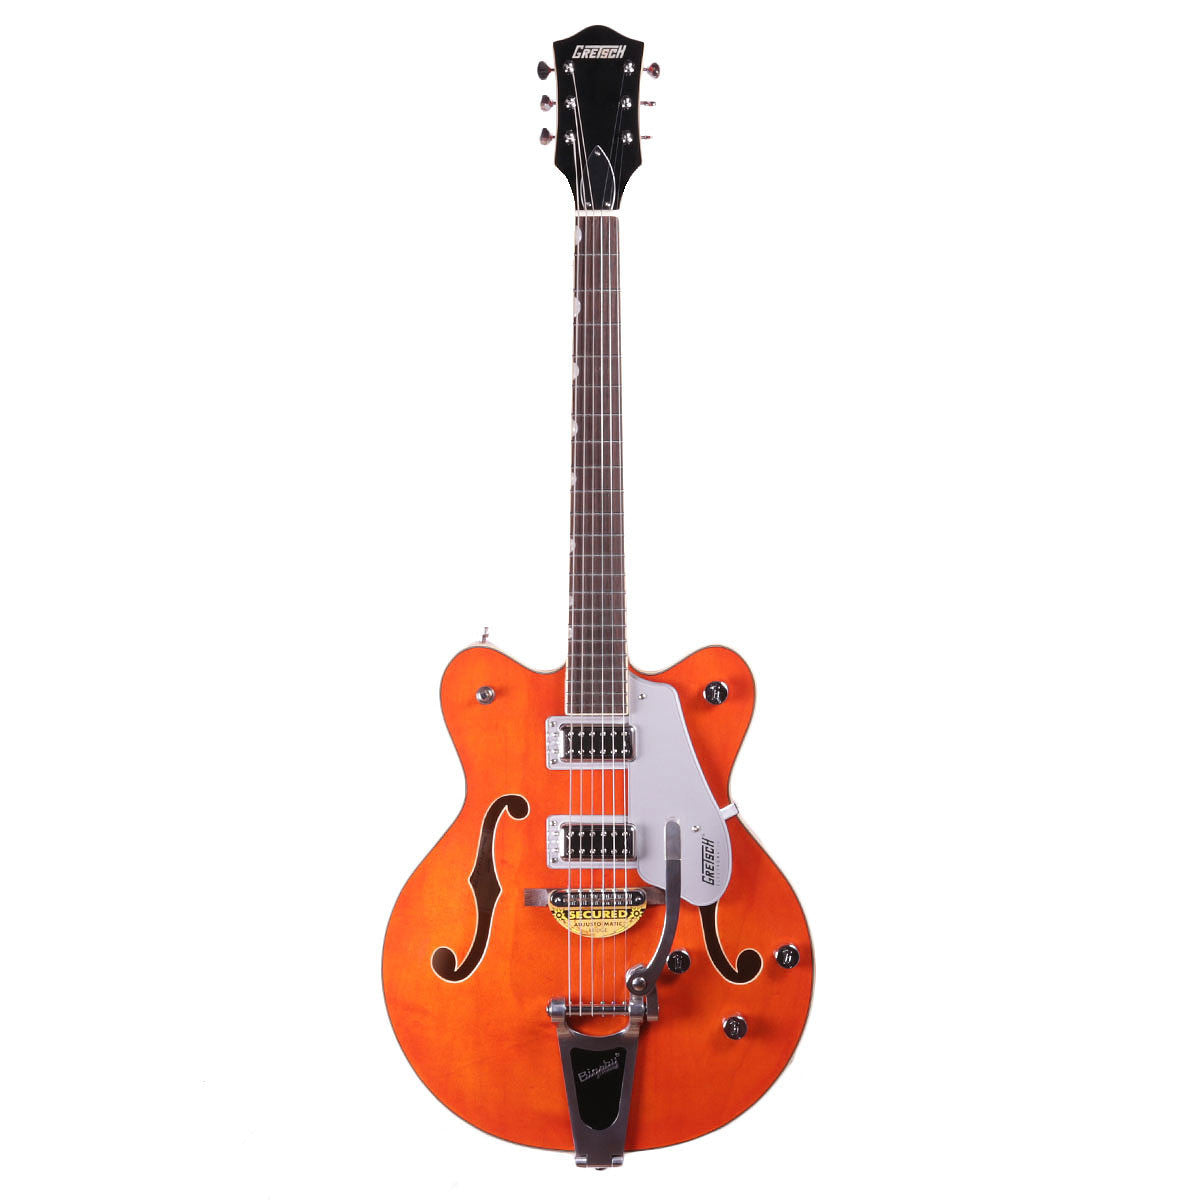 Gretsch G5422T 2016 Electromatic Hollowbody w/Bigsby - Orange - Vintage Guitar Boutique - 2